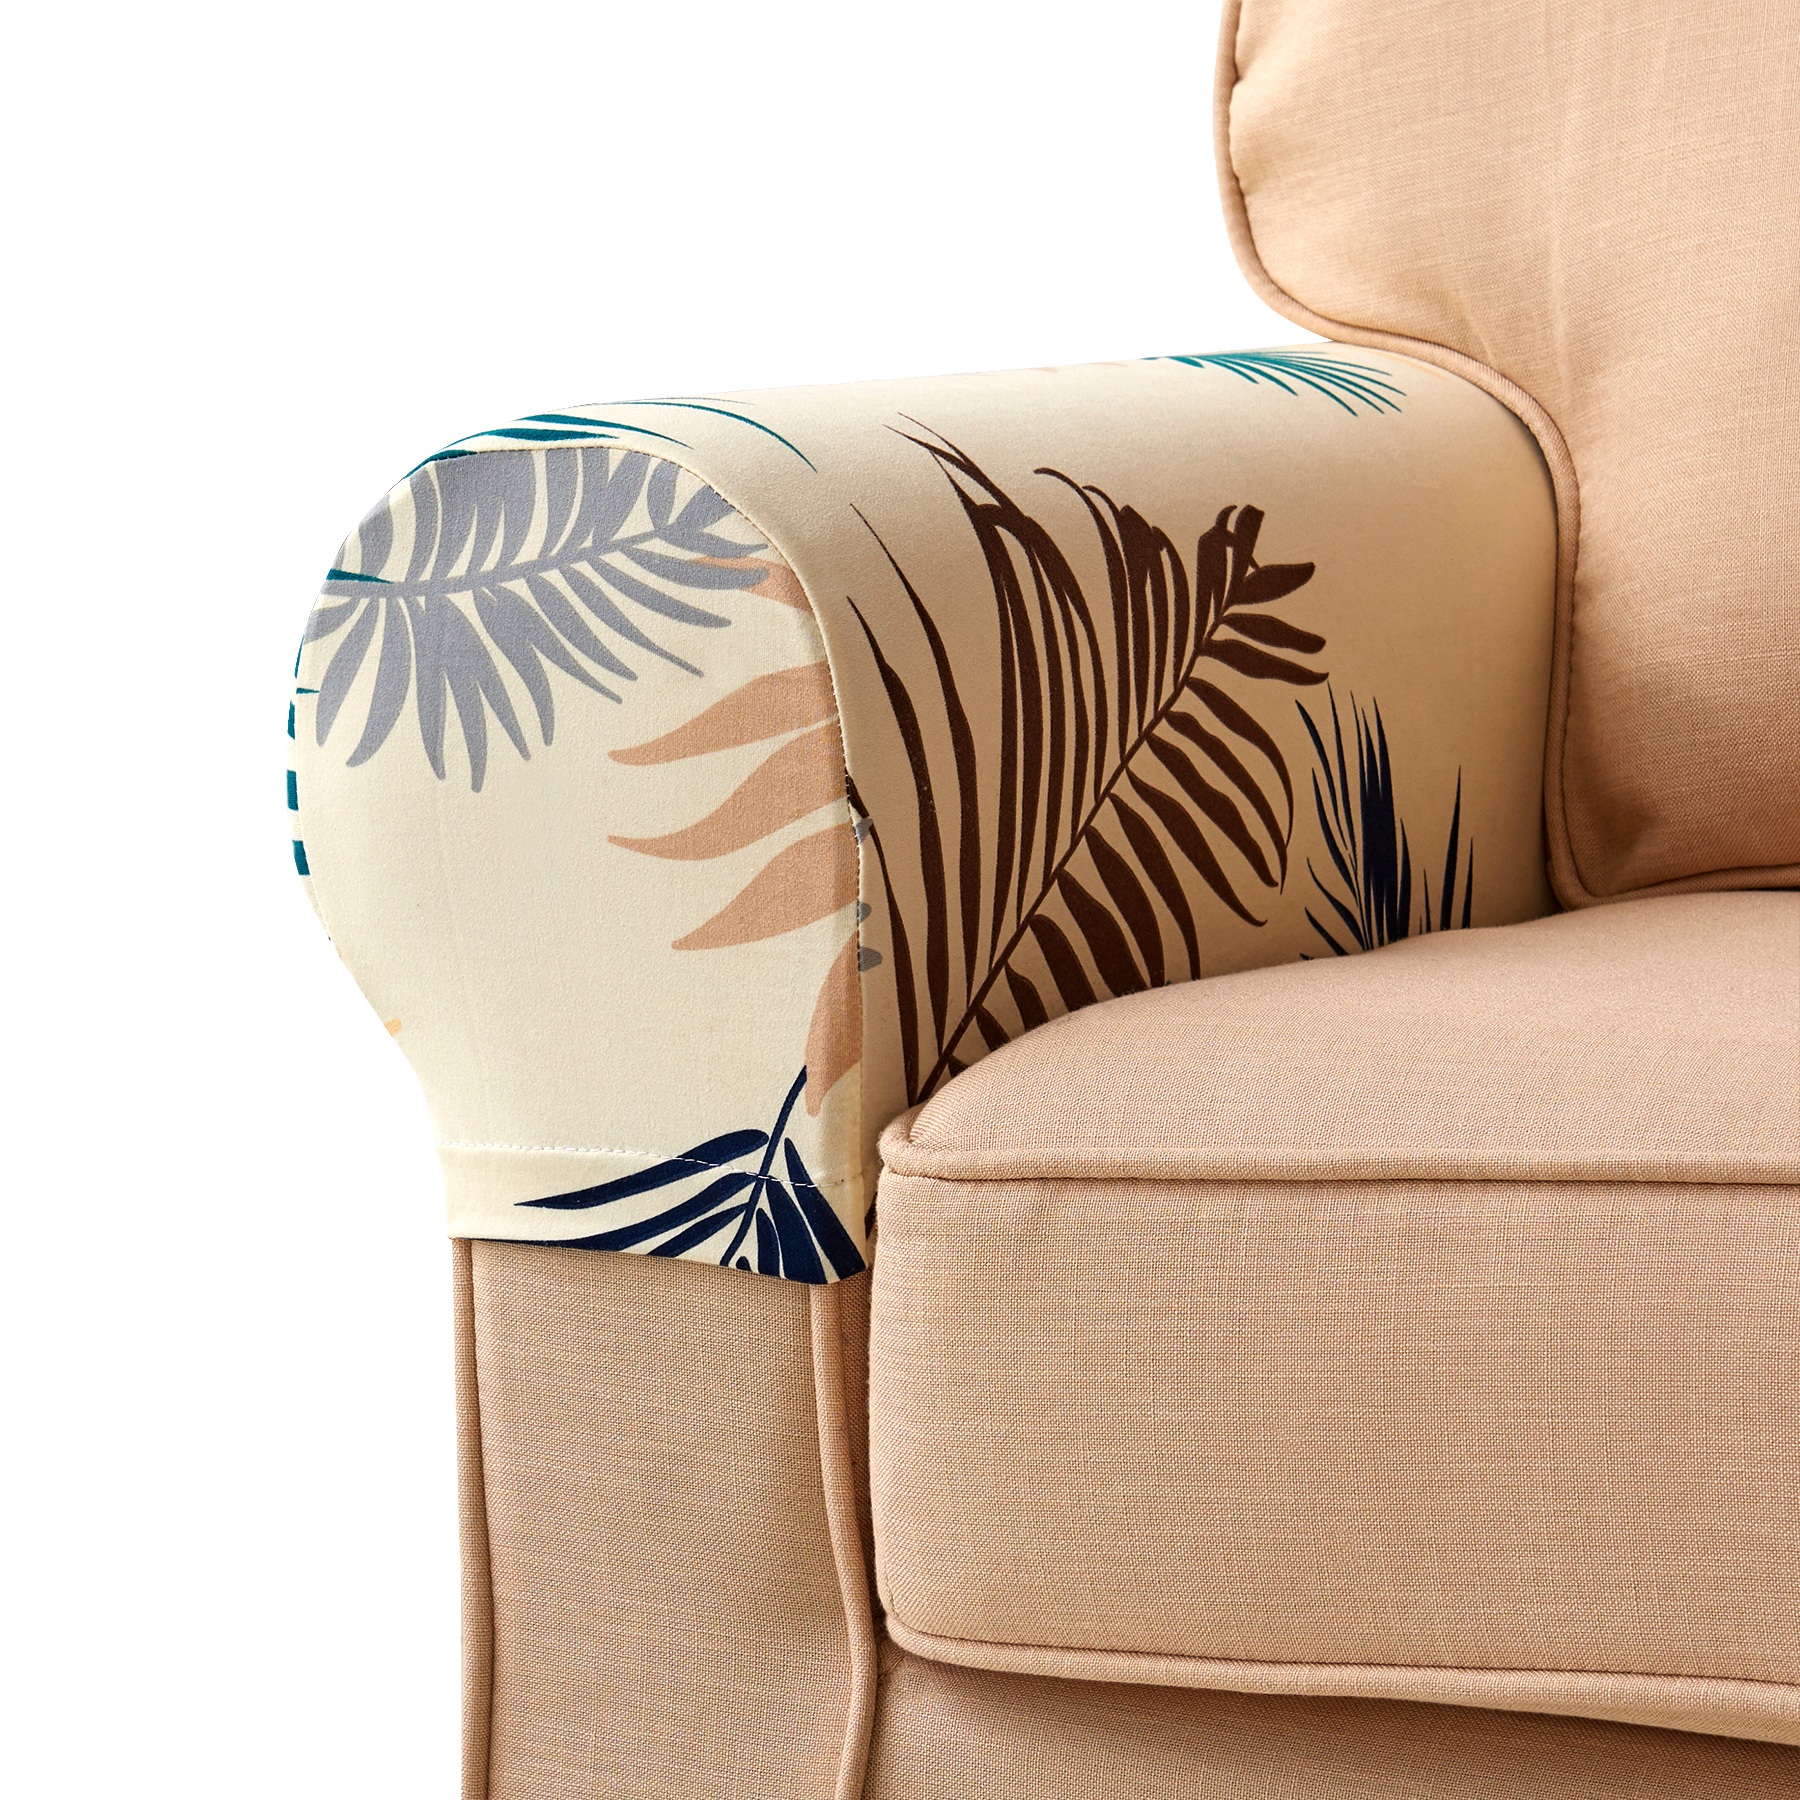 Leaves Printed Stretch Armrest Covers Set Of 2 Couch Arm Covers Arm Chair Covers Sofa Arm Covers